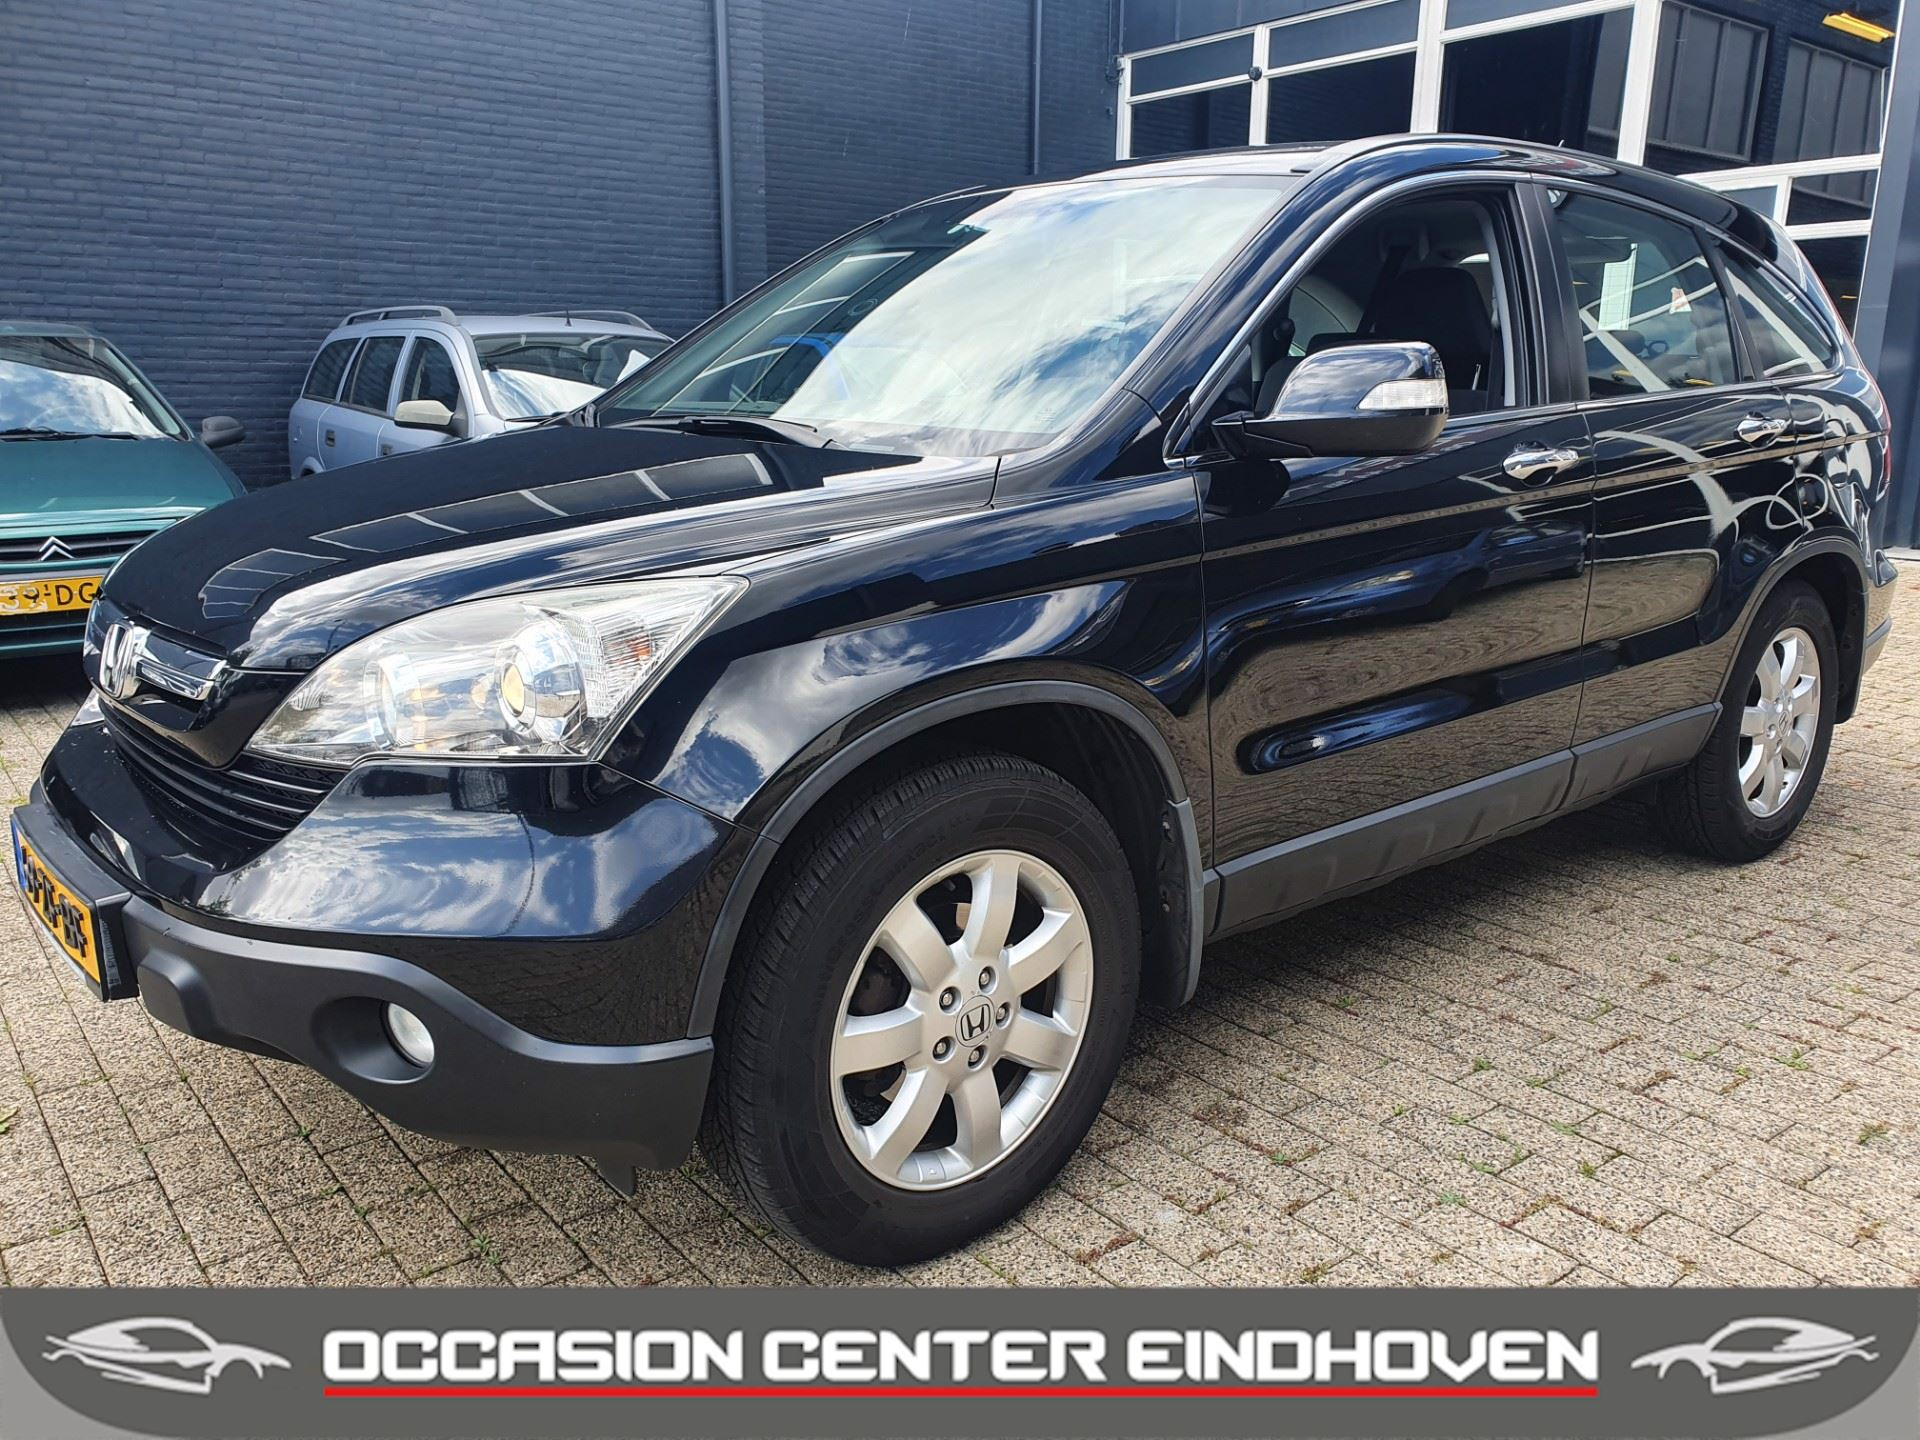 Honda CR-V occasion - Occasion Center Eindhoven